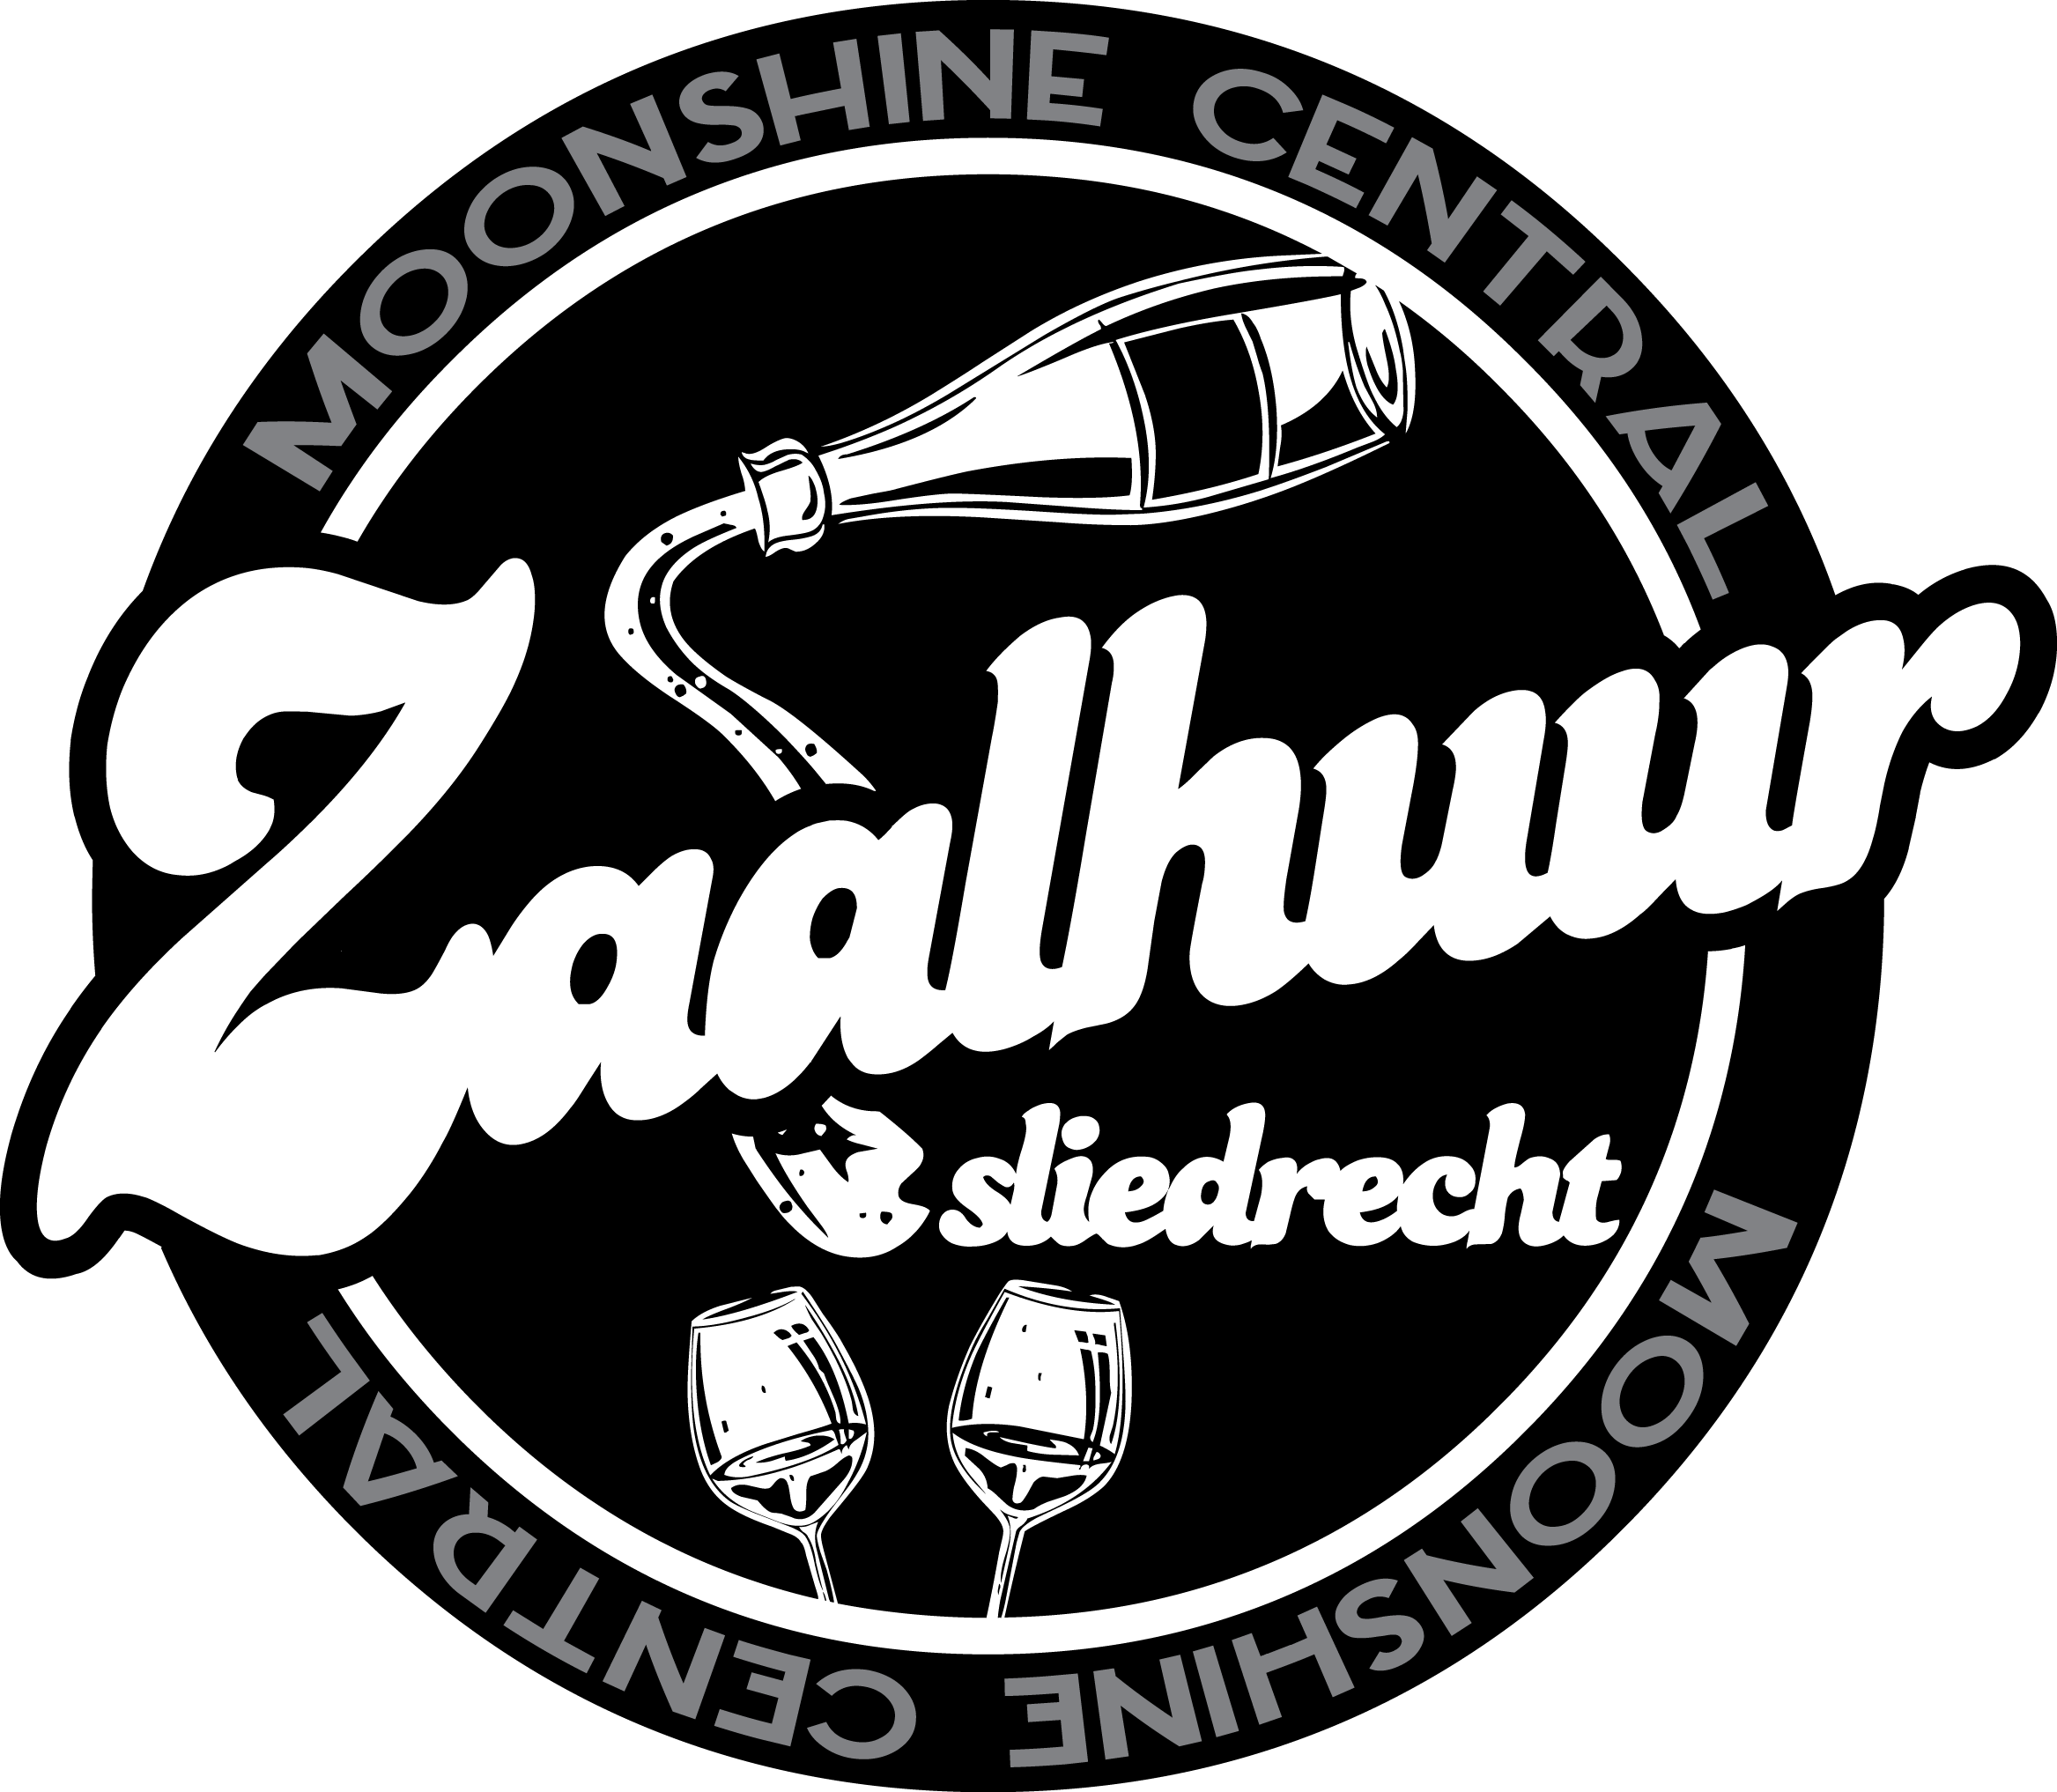 The Moonshine Central